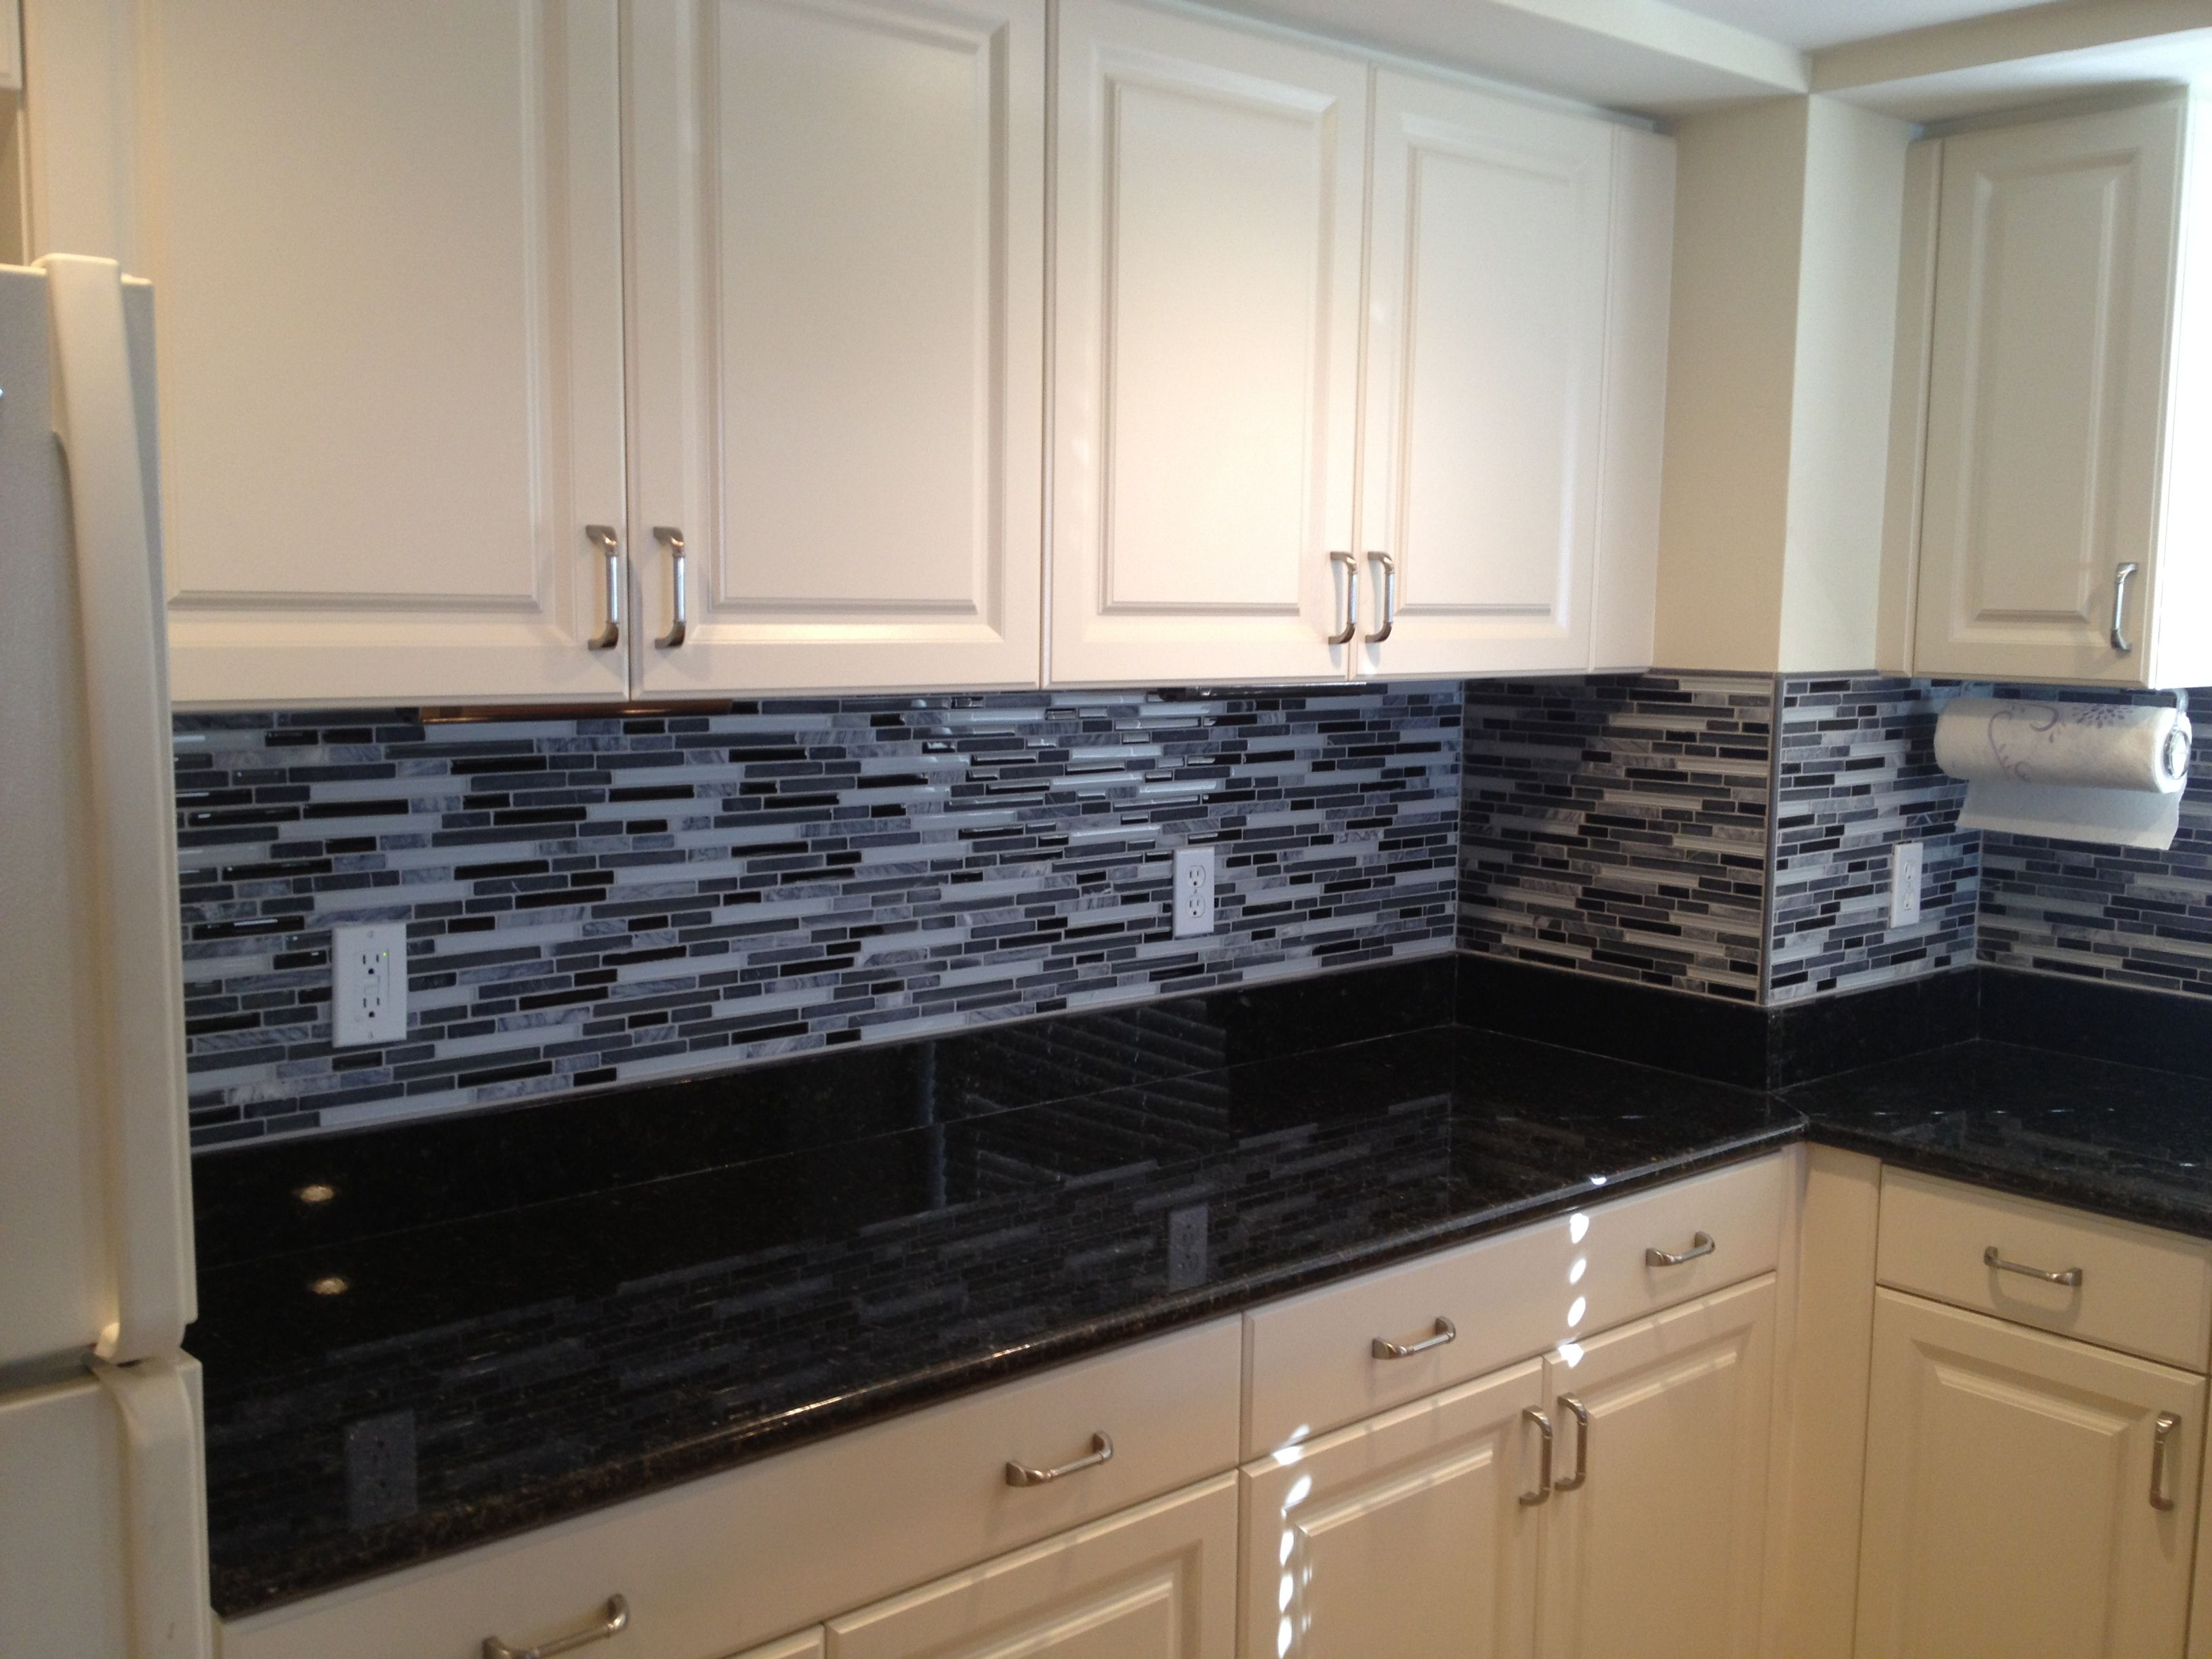 Classic black and white kitchenthe glass and stone